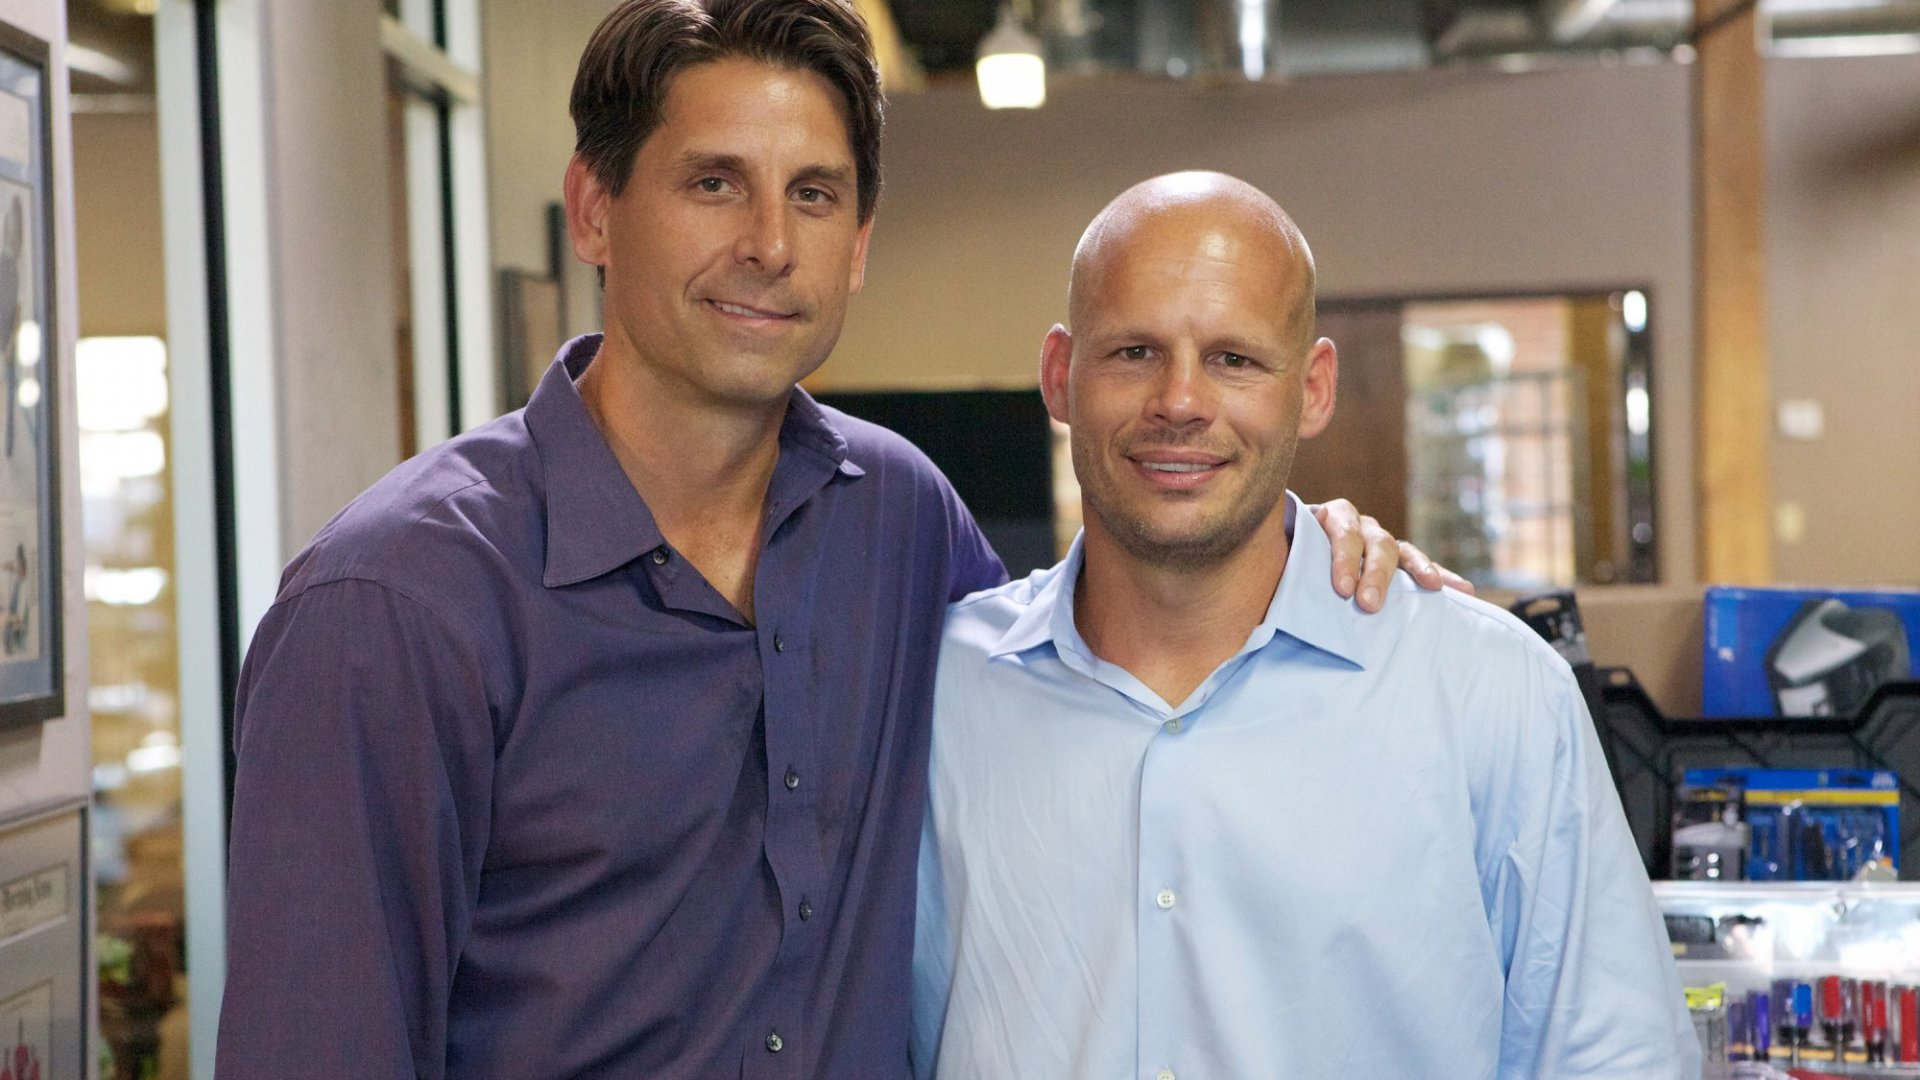 Chuck Runyon (left) with business partner Dave Mortensen at Anytime Fitness HQ